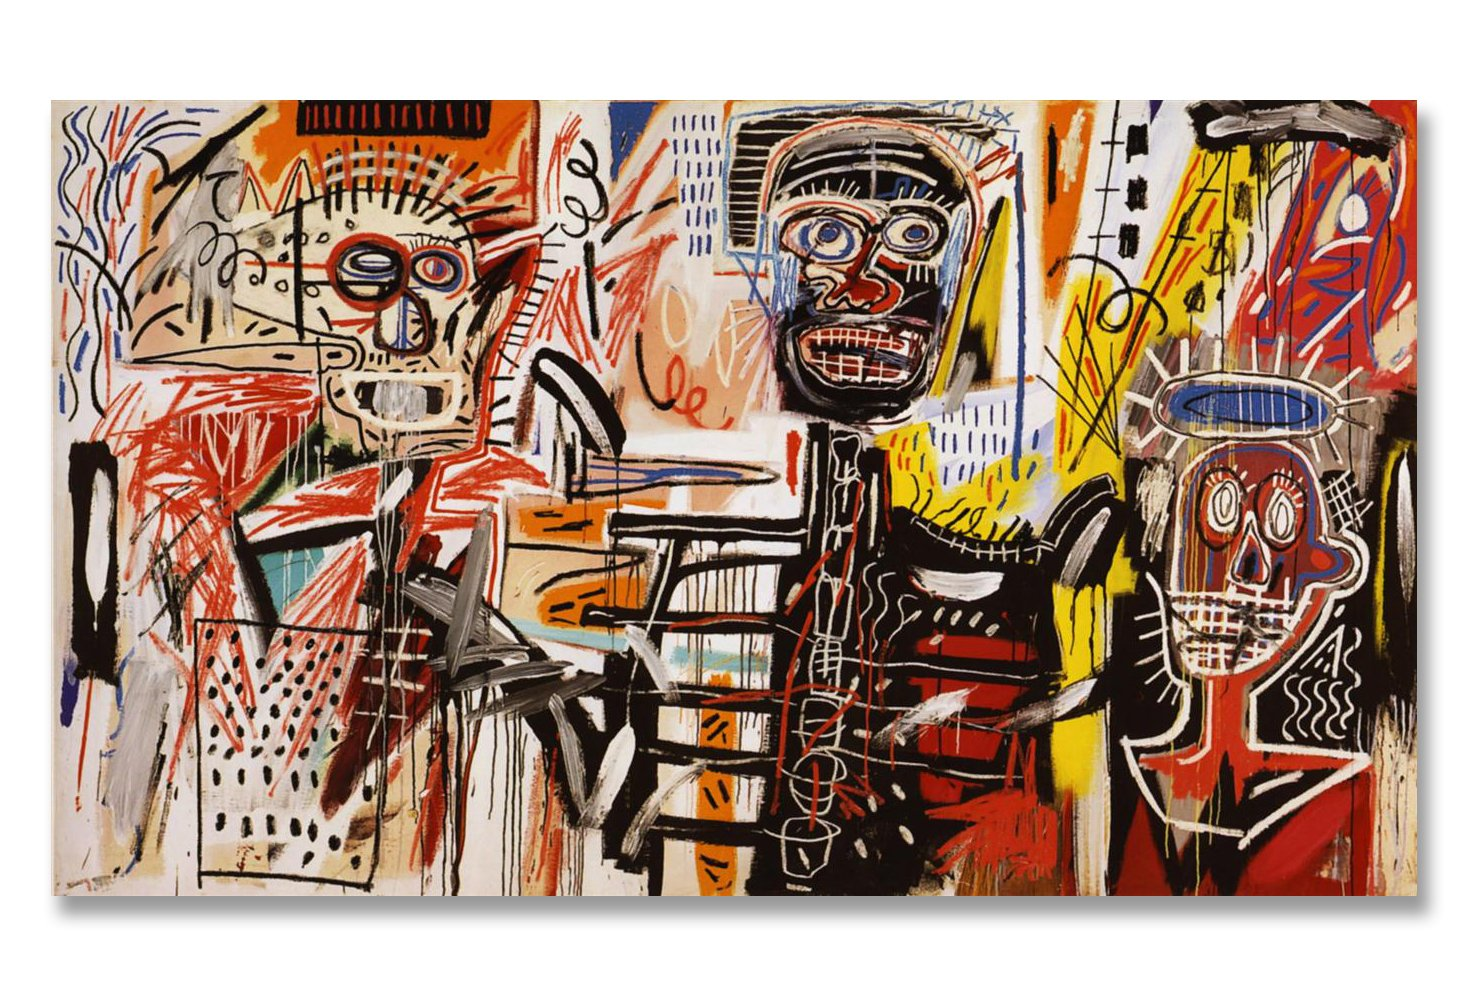 Jean-Michel Basquiat Original Graffiti Art Philistines 1982 Canvas Paintings Hand Painted Reproduction Unframed Tablet - 48X28 inch (122X71 cm) for Living Room Wall Decor To DIY Frame